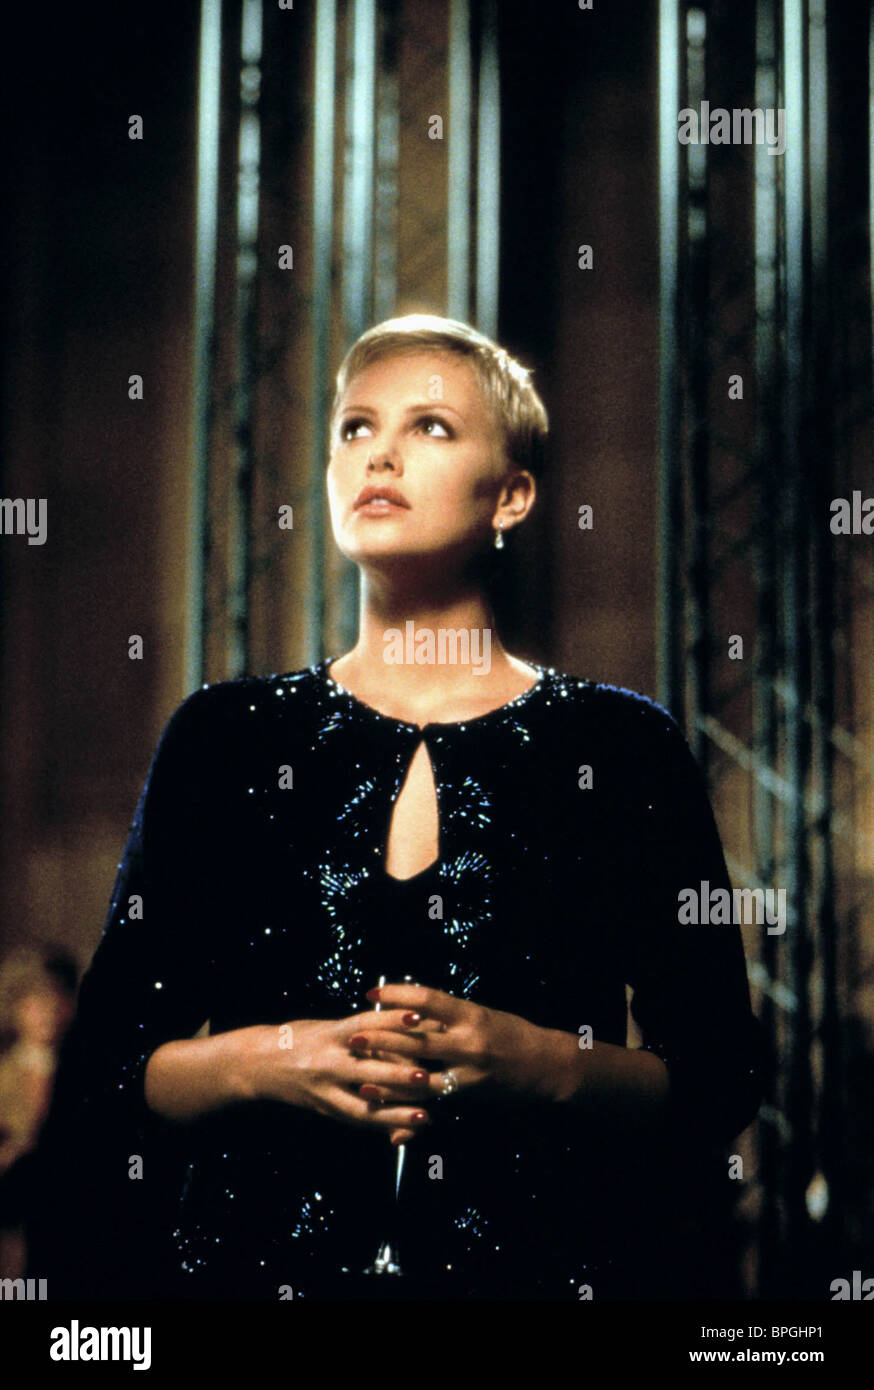 CHARLIZE THERON THE ASTRONAUT'S WIFE (1999 Stock Photo ...